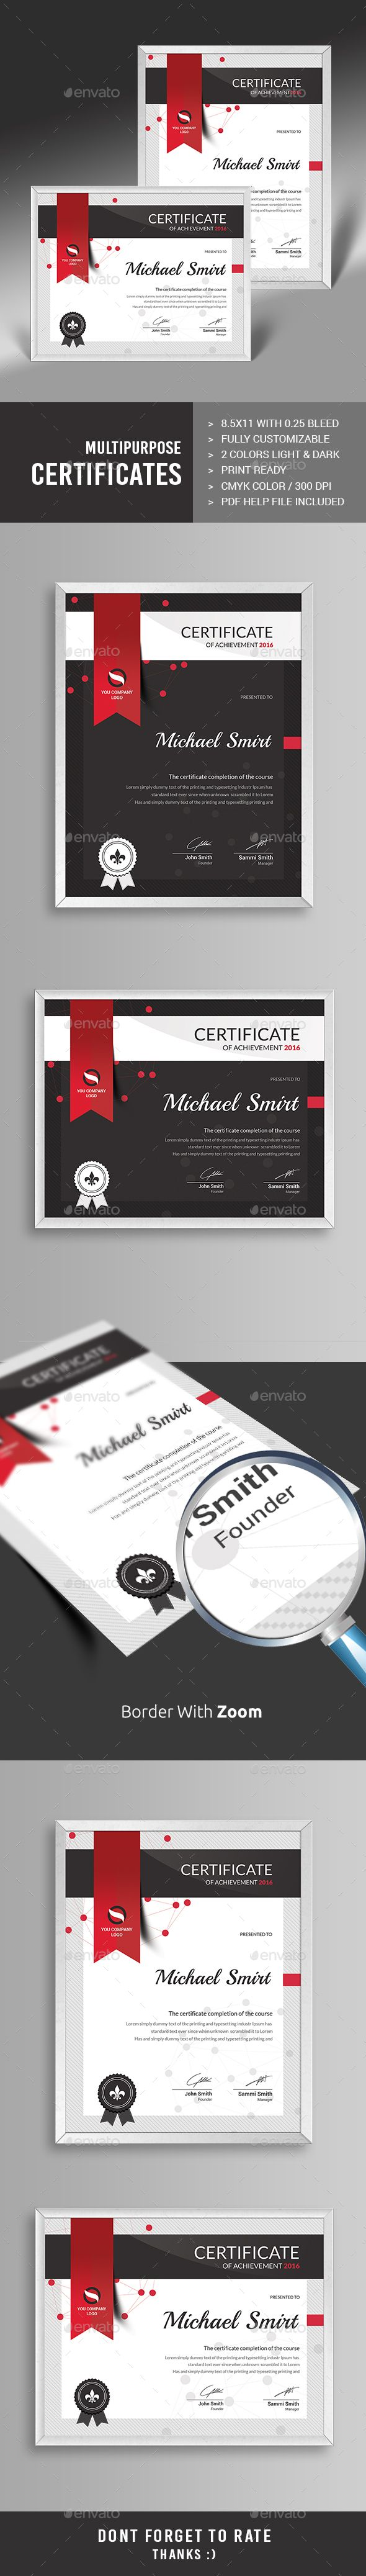 Multipurpose Certificates Template PSD. Download here: http://graphicriver.net/item/multipurpose-certificates/13459447?ref=ksioks